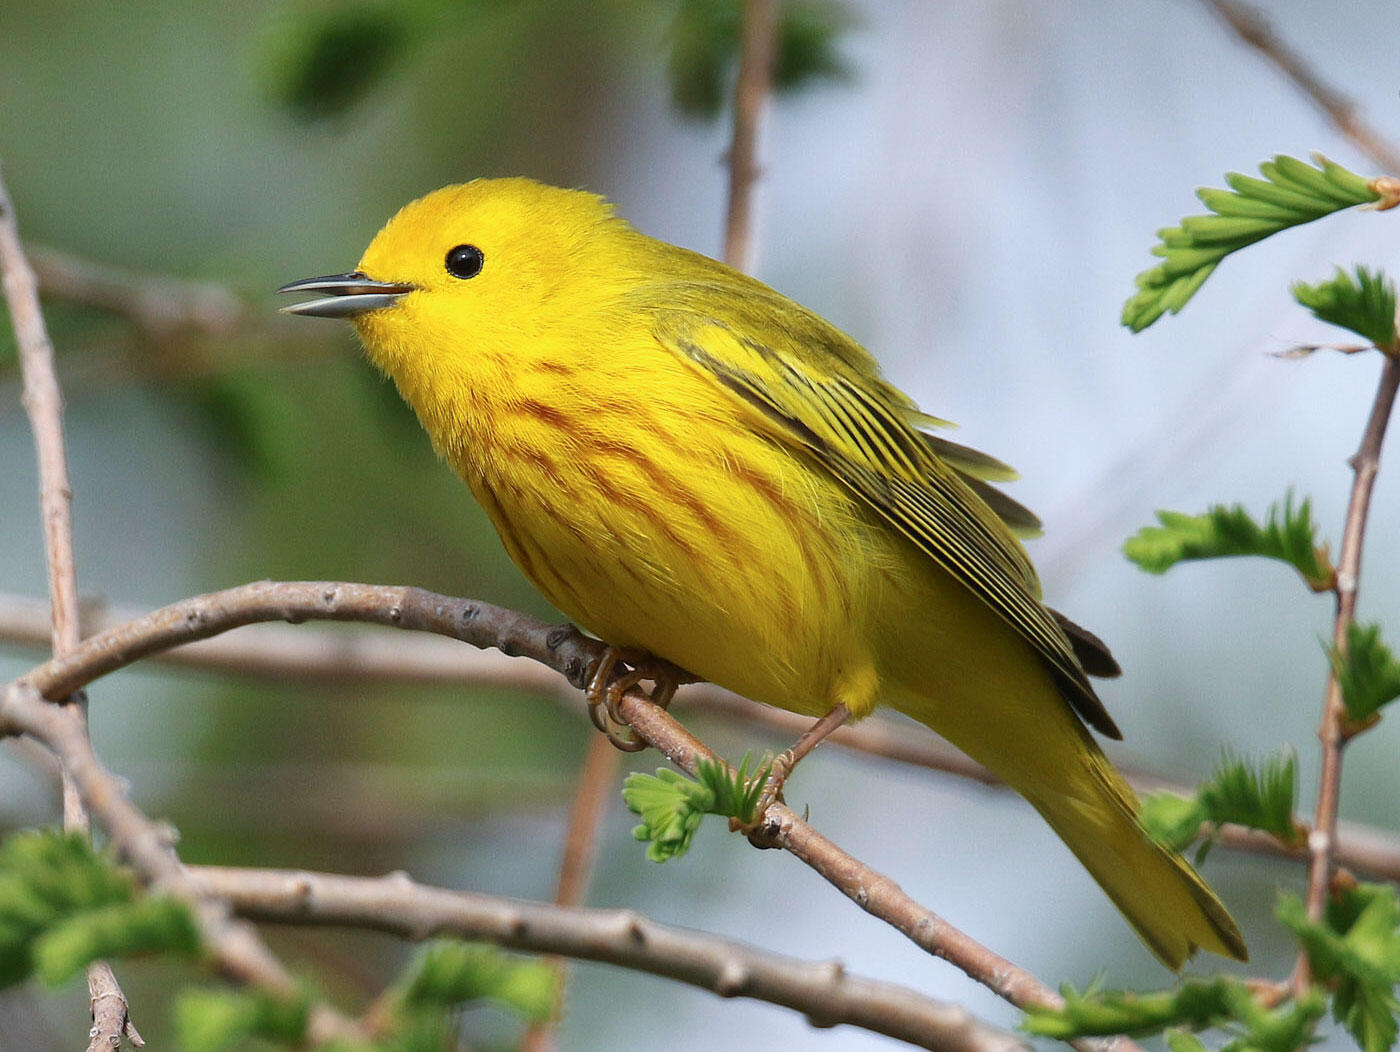 The Yellow Warbler has a sweet, sweet, sweet song and sweet, honey-colored plumage. Tom Stephenson